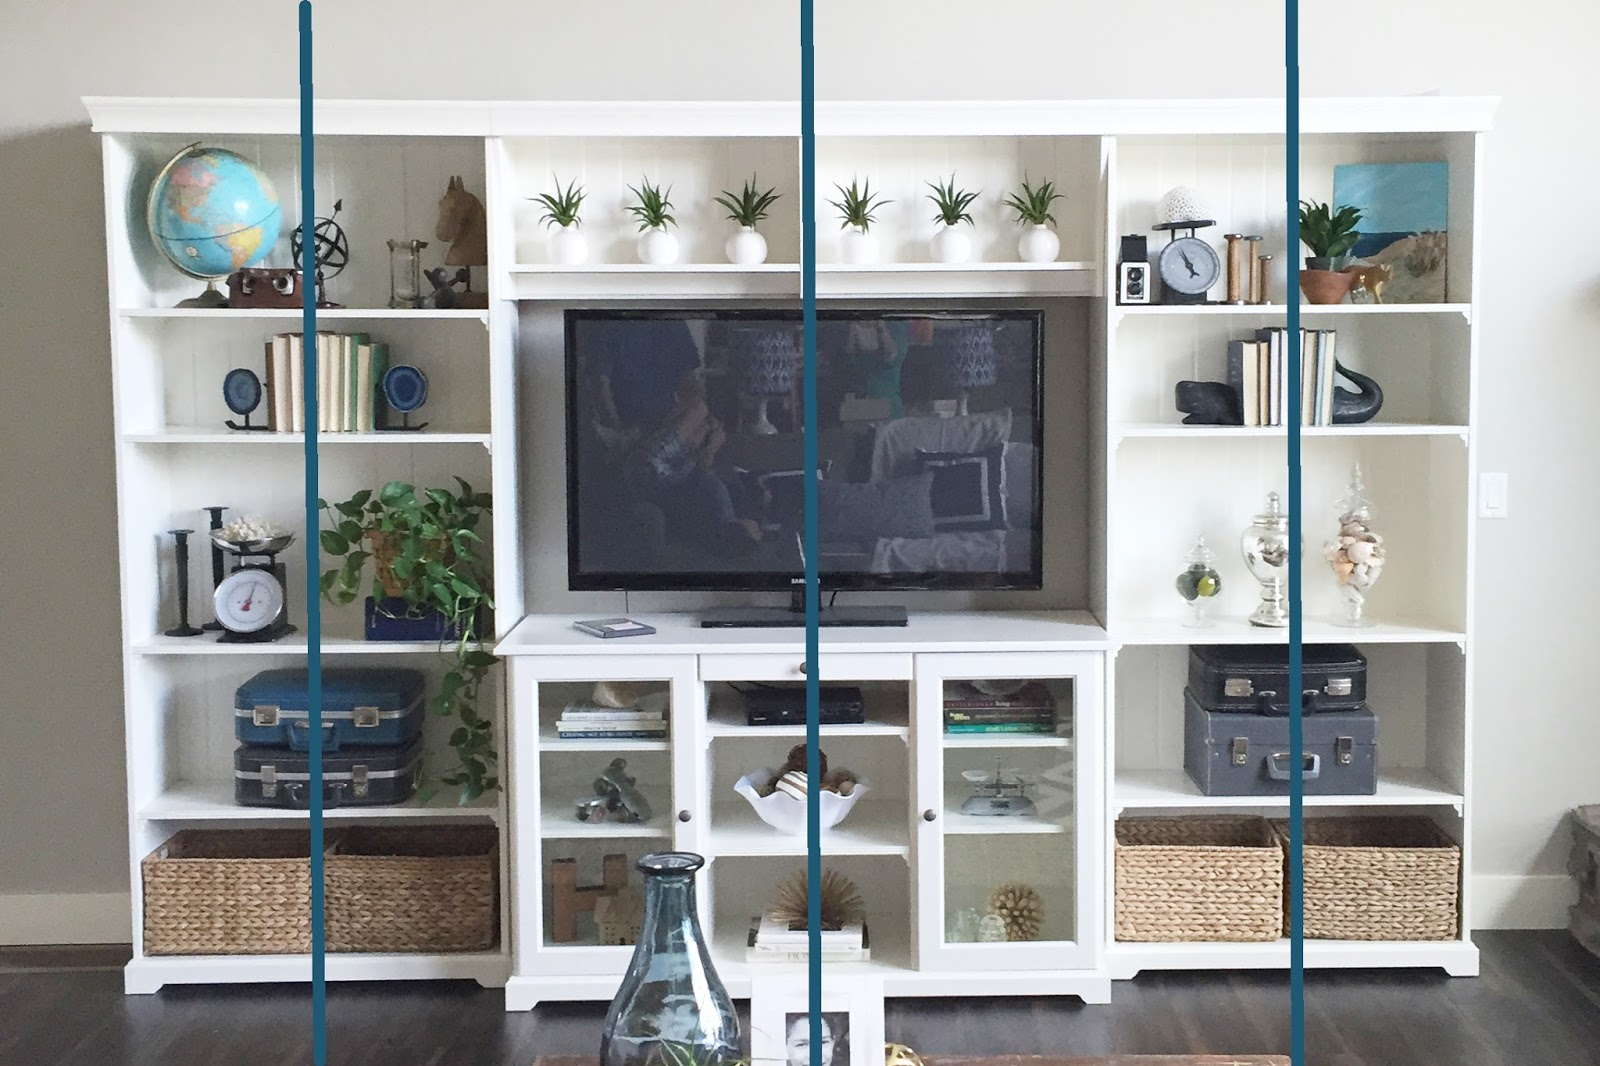 How To Style The Ikea Liatorp Bookshelves Jen Gallacher